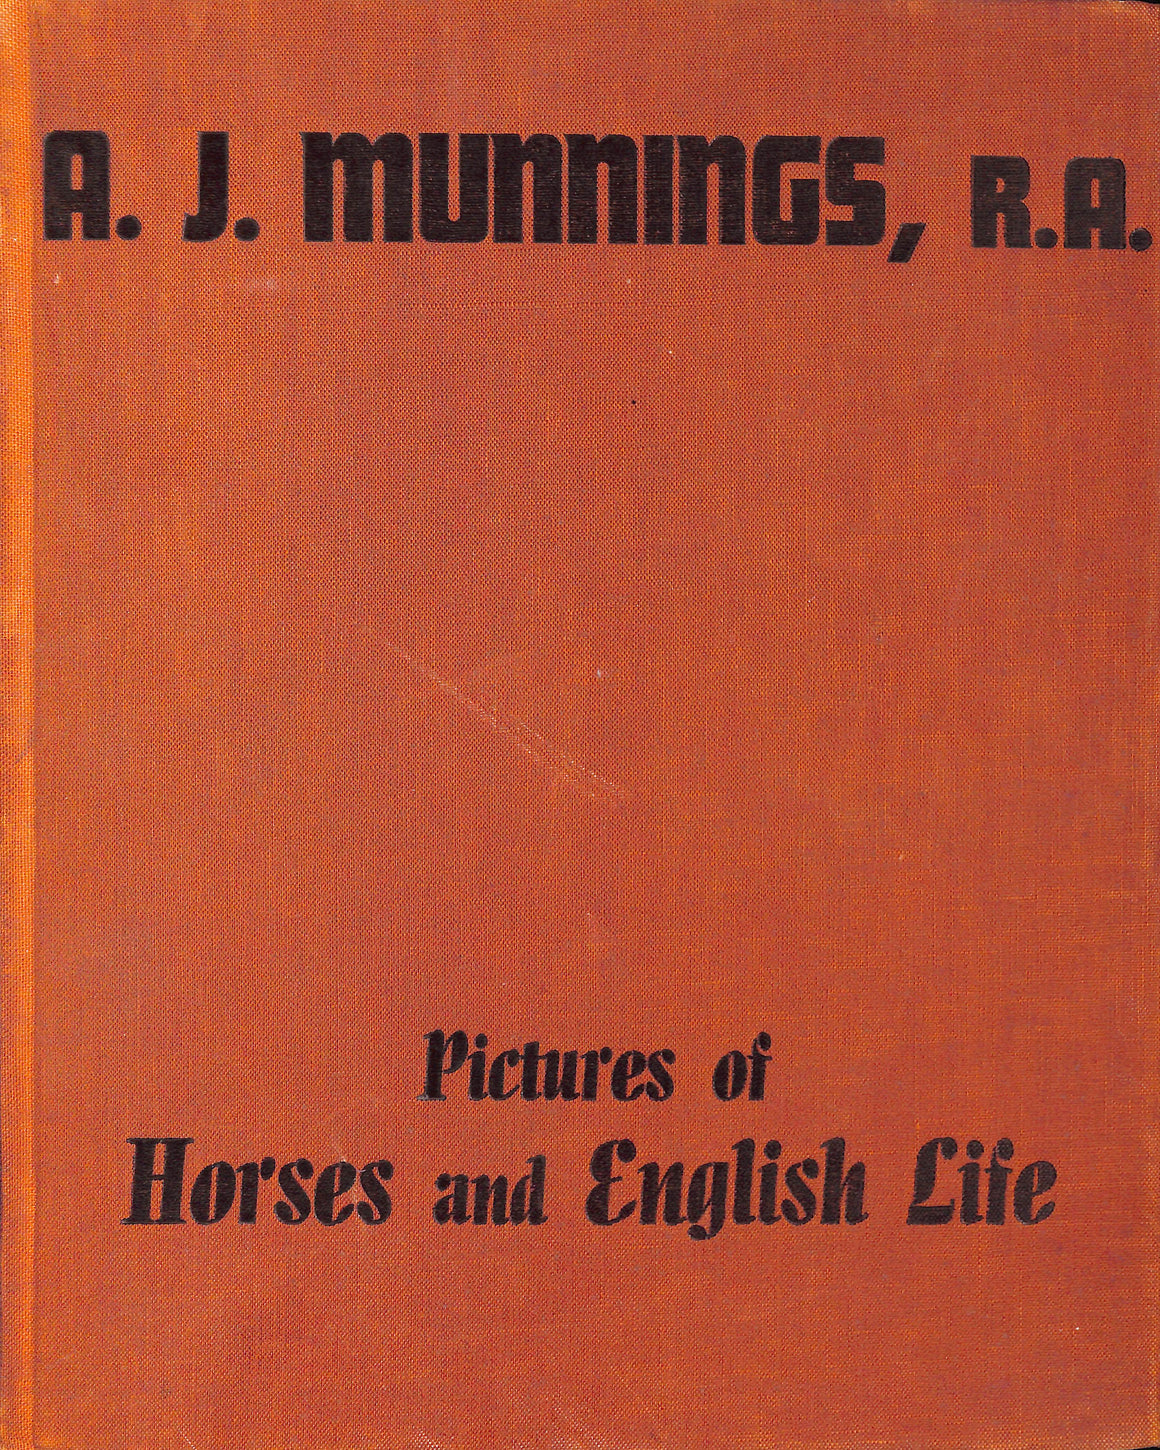 Pictures of Horses and English Life